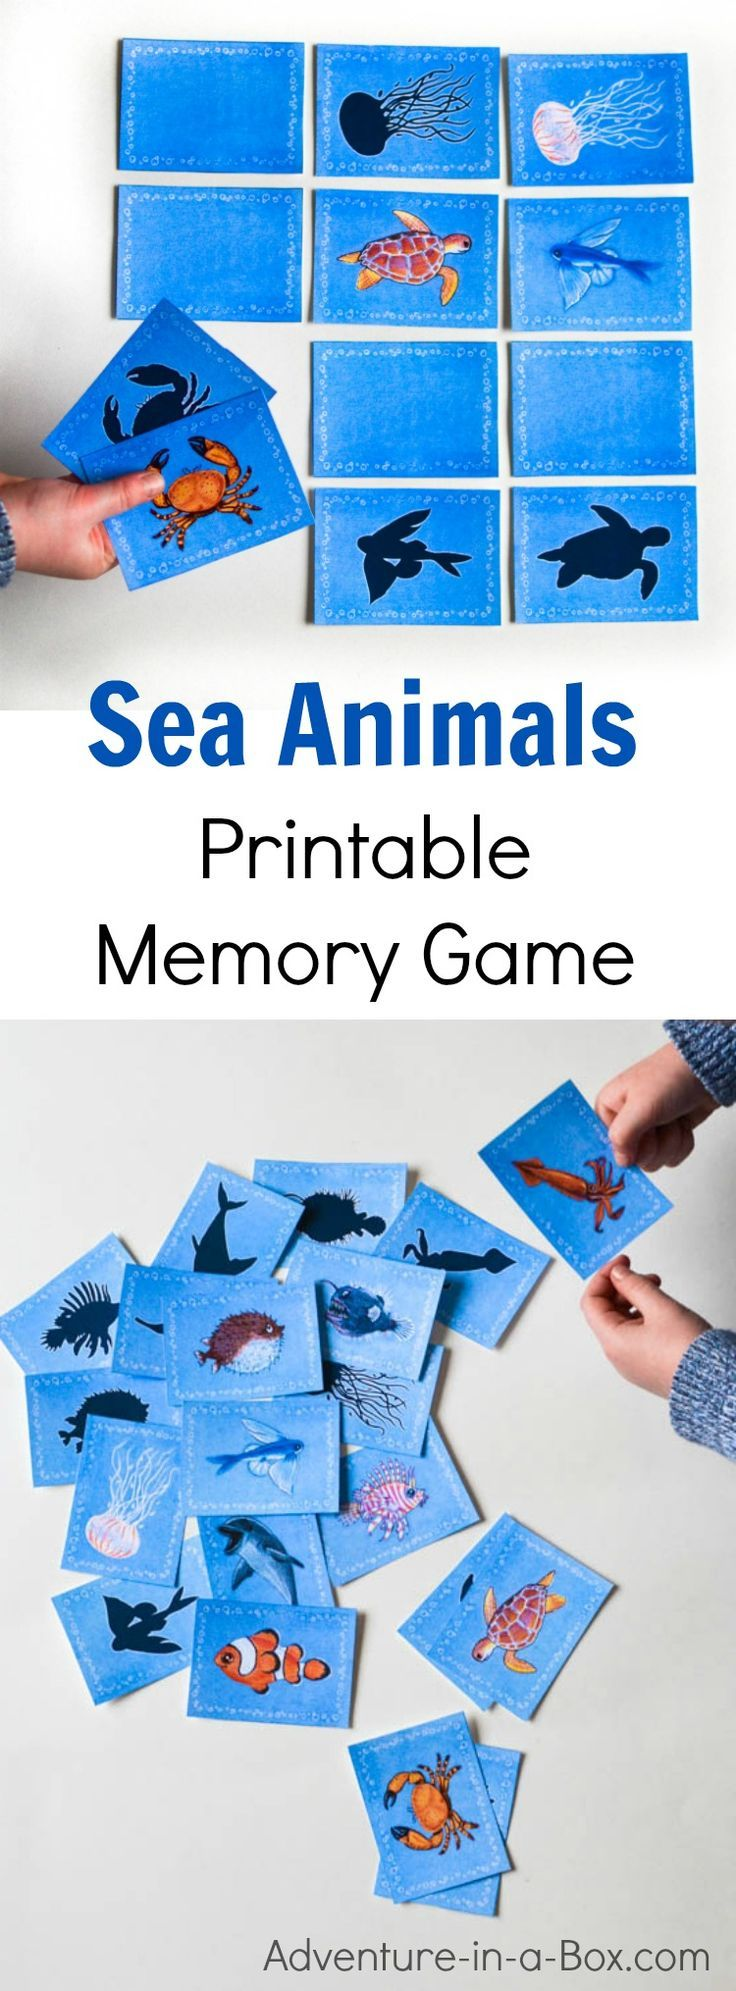 Sea animals printable memory game for kids. A fun matching game with 3 levels of complexity for different ages. Great for studying ocean with preschoolers as well as K-6!